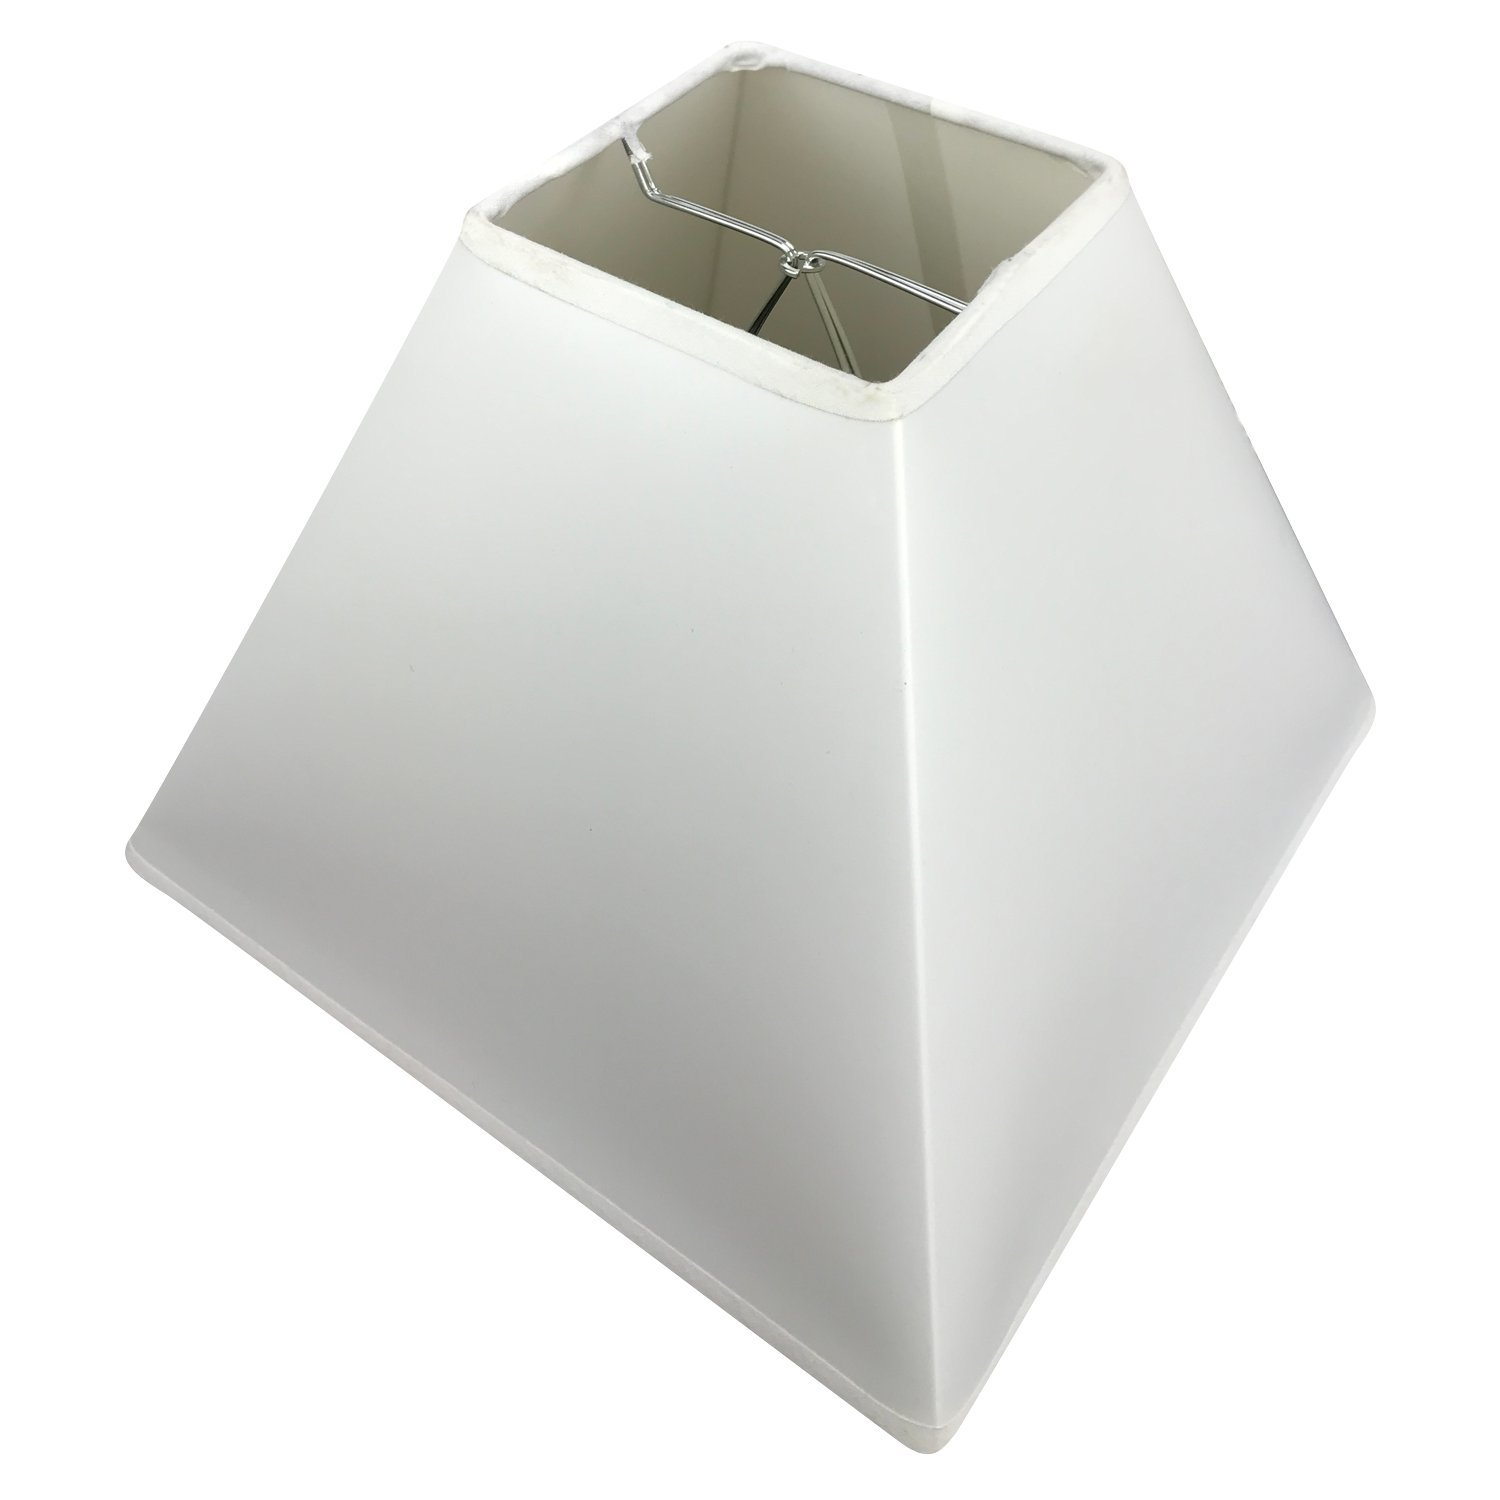 FenchelShades.com 4'' Top Dimension x 10'' Bottom Dimension 8'' Slant Height Square Lampshade USA Made (White Plastic)